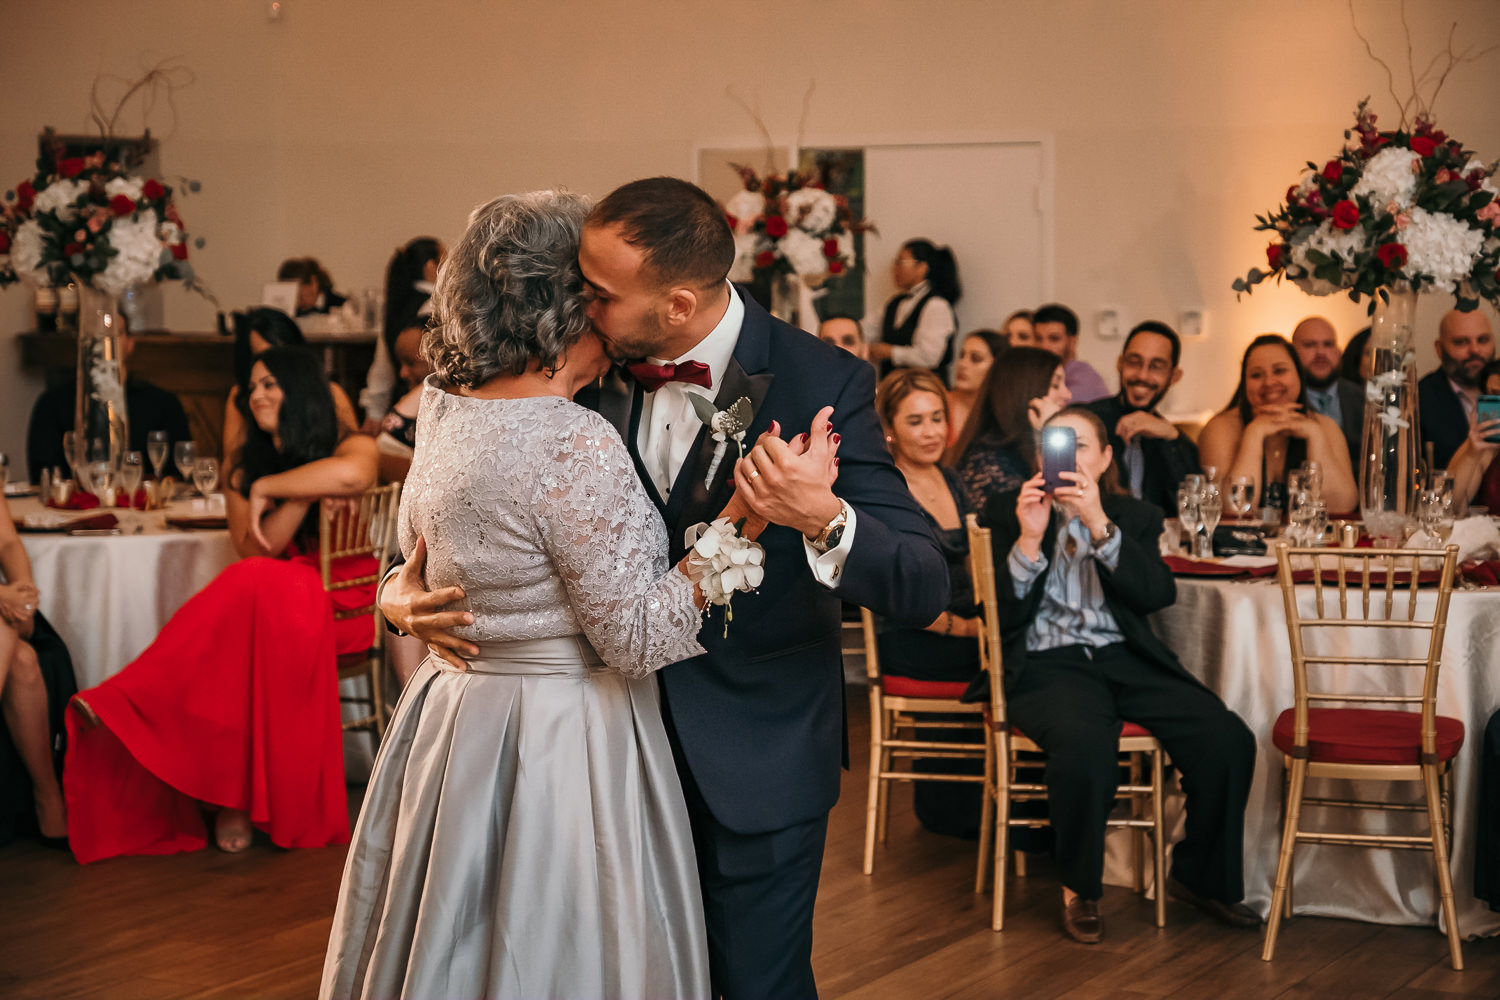 son mother dance groom kissing mothers cheek